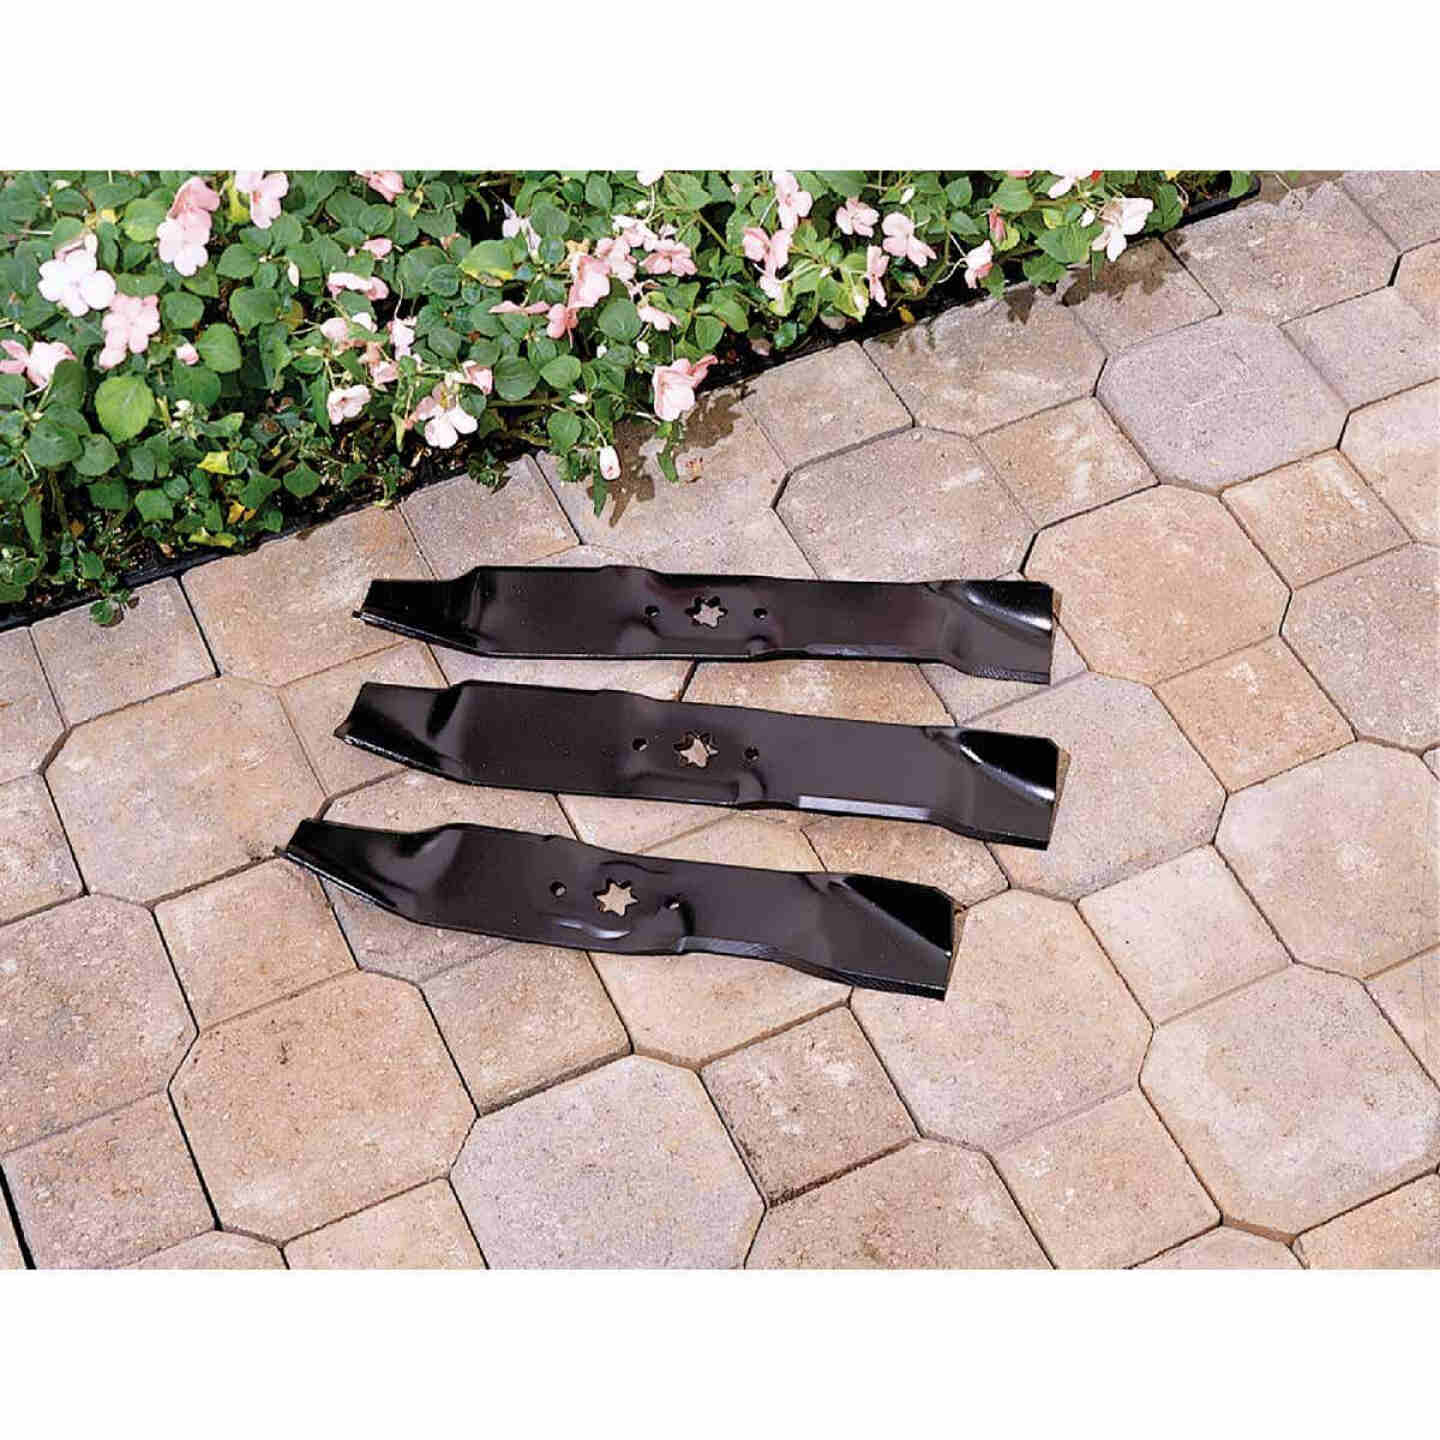 Arnold MTD 50 In. Tractor Mower Blade Set Image 2